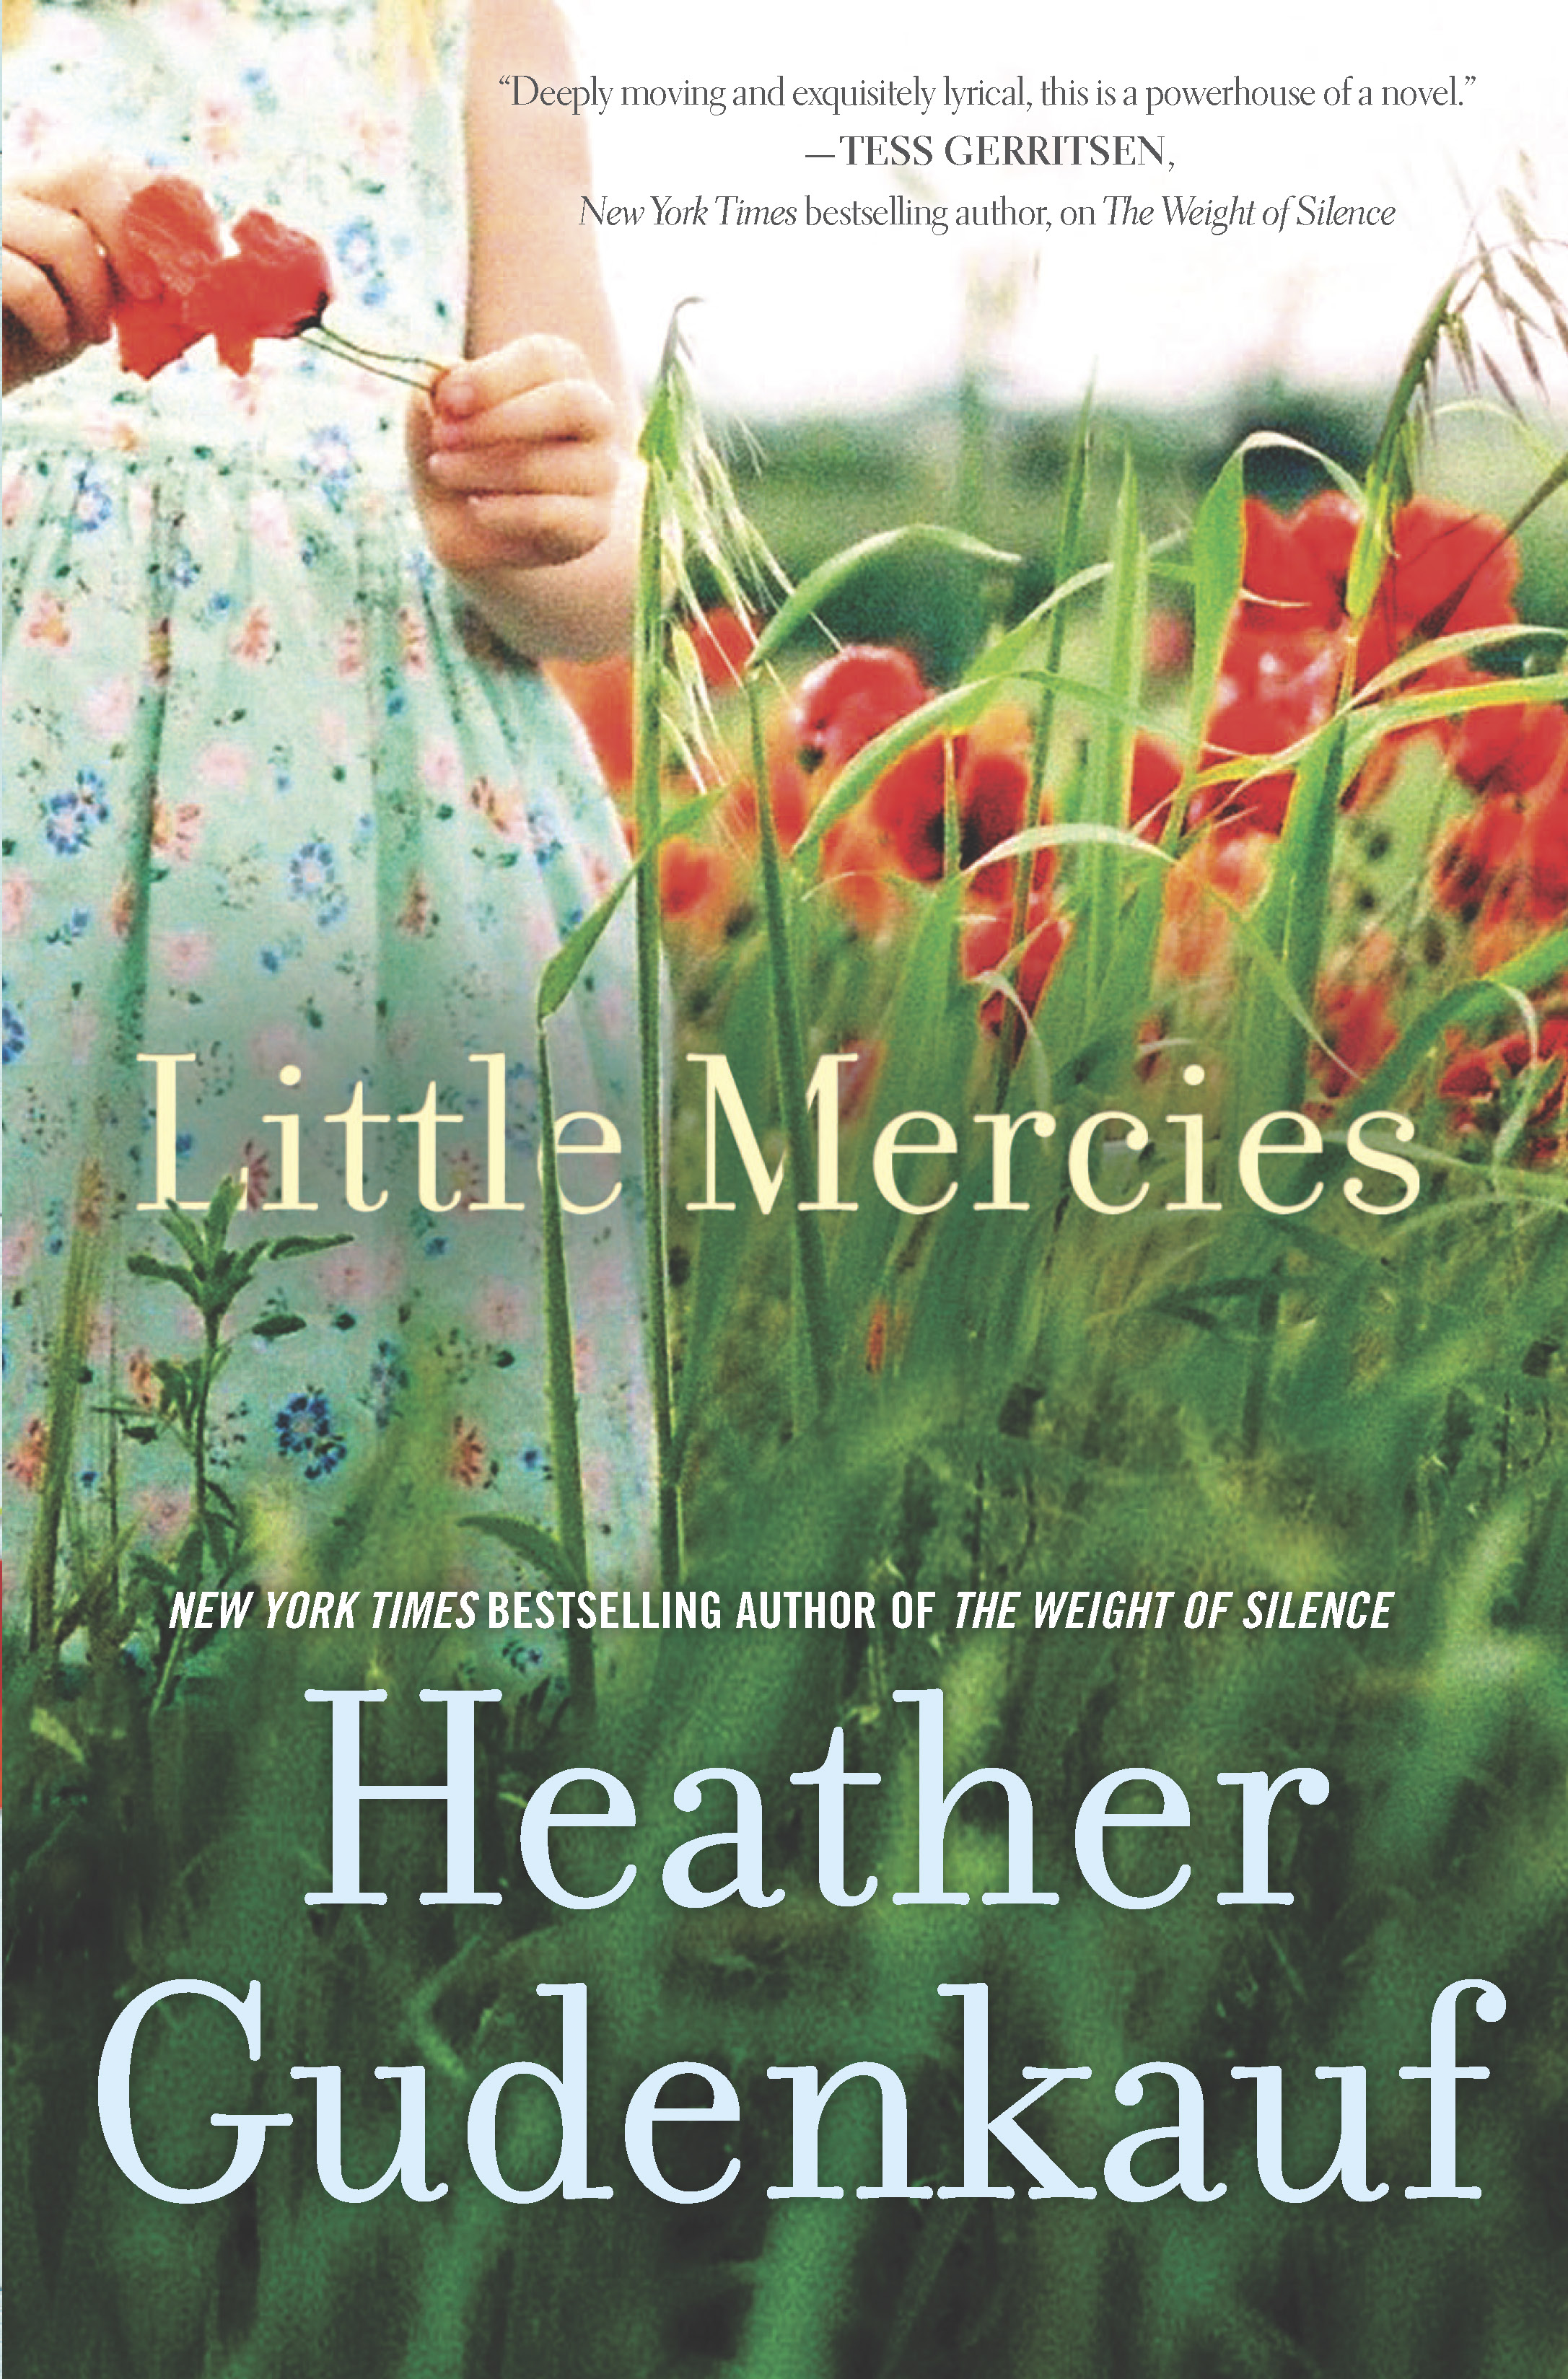 5 Summer Must-Reads & a Little Mercies Book Giveaway #LittleMercies